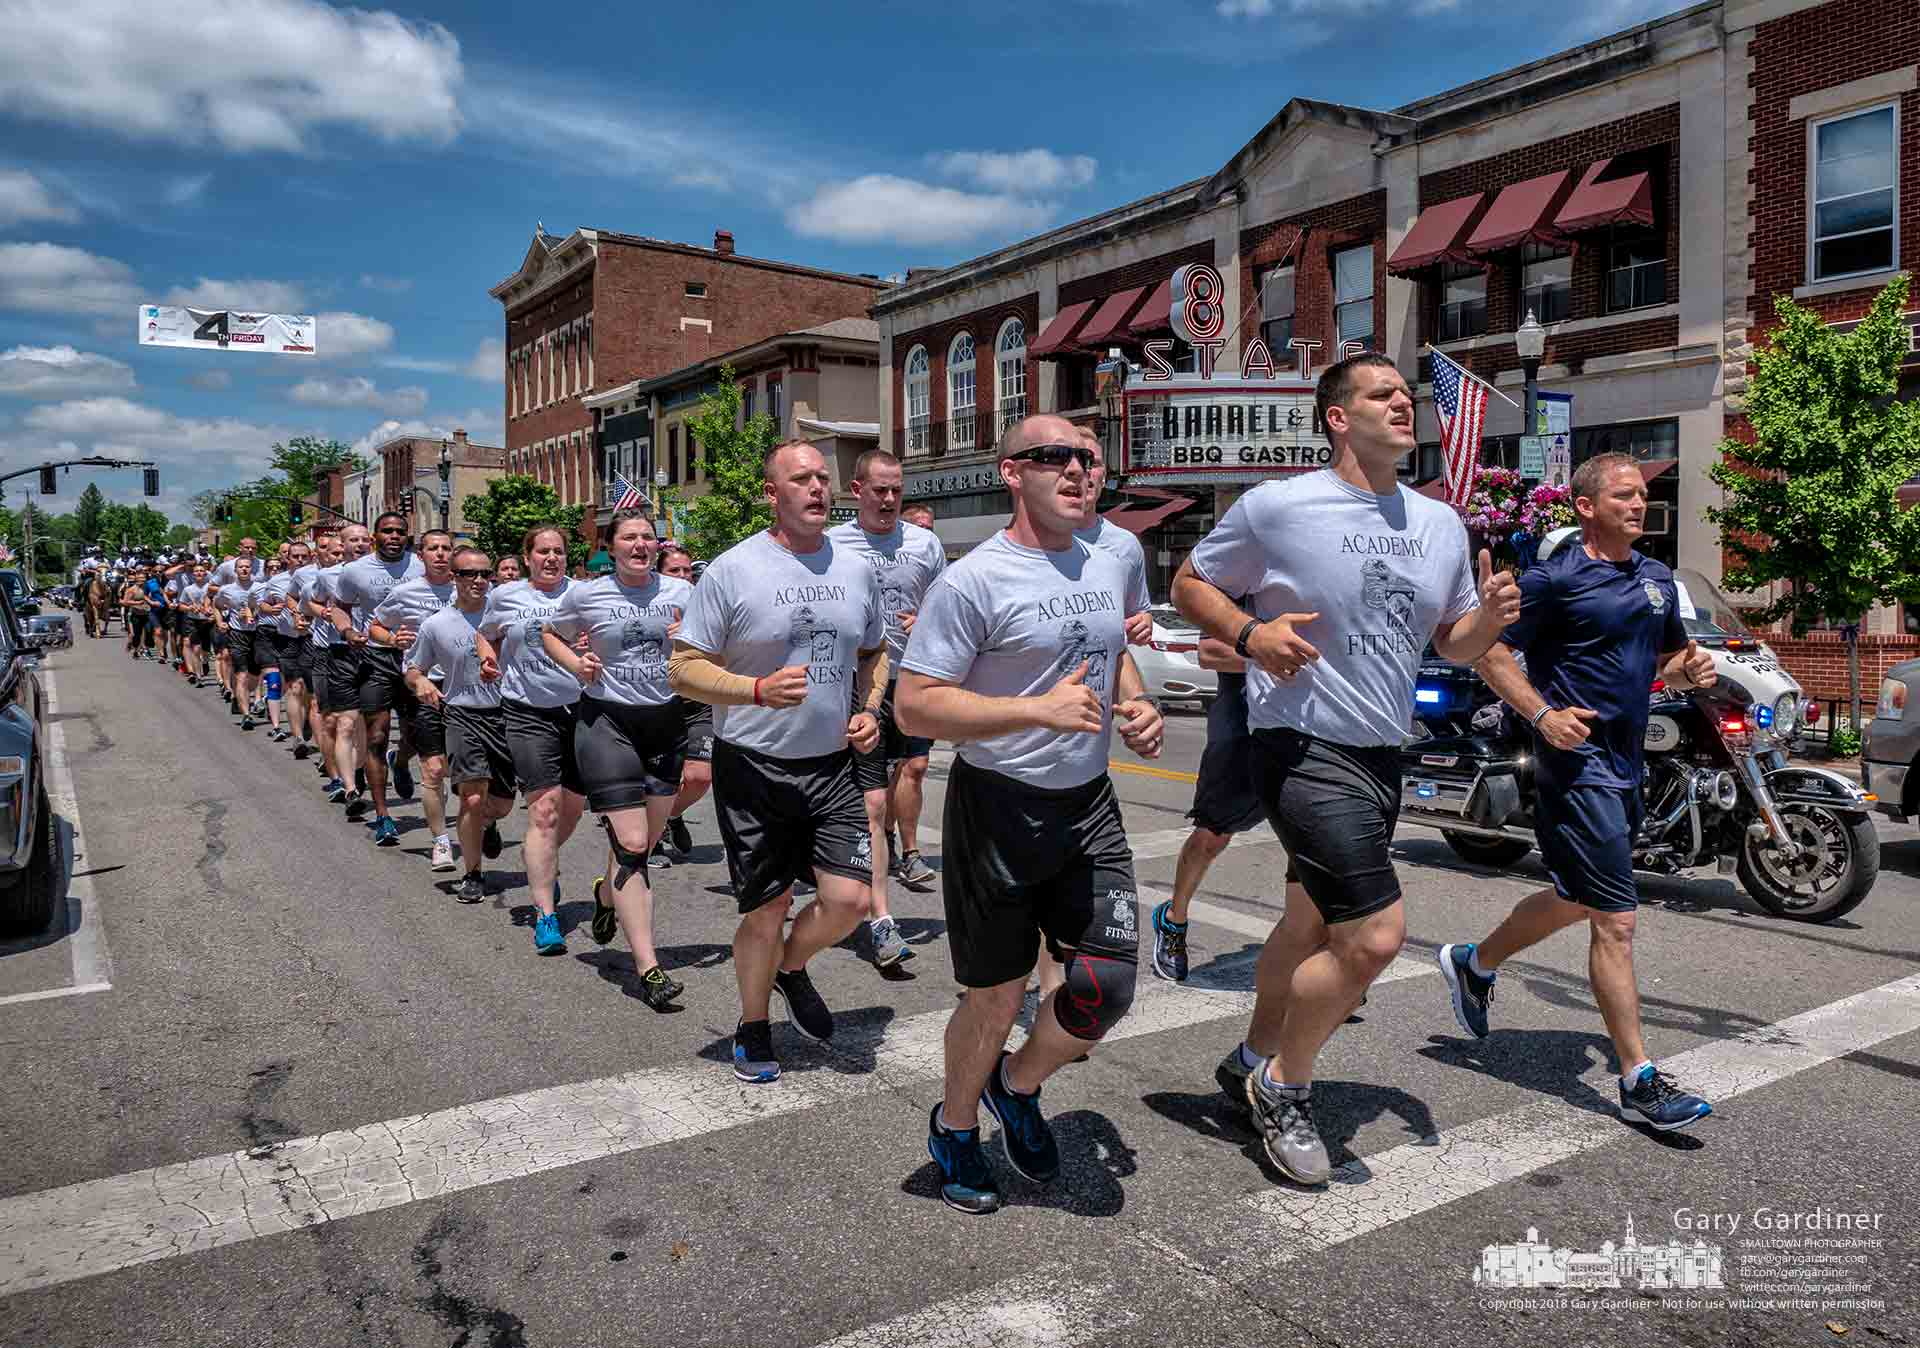 Shoppers and drivers were treated to a rare sight in Uptown Westerville as the Columbus Police Academy Fun Run navigated its way along State Steet on the first leg of the run. My Final Photo for May 23, 2018.